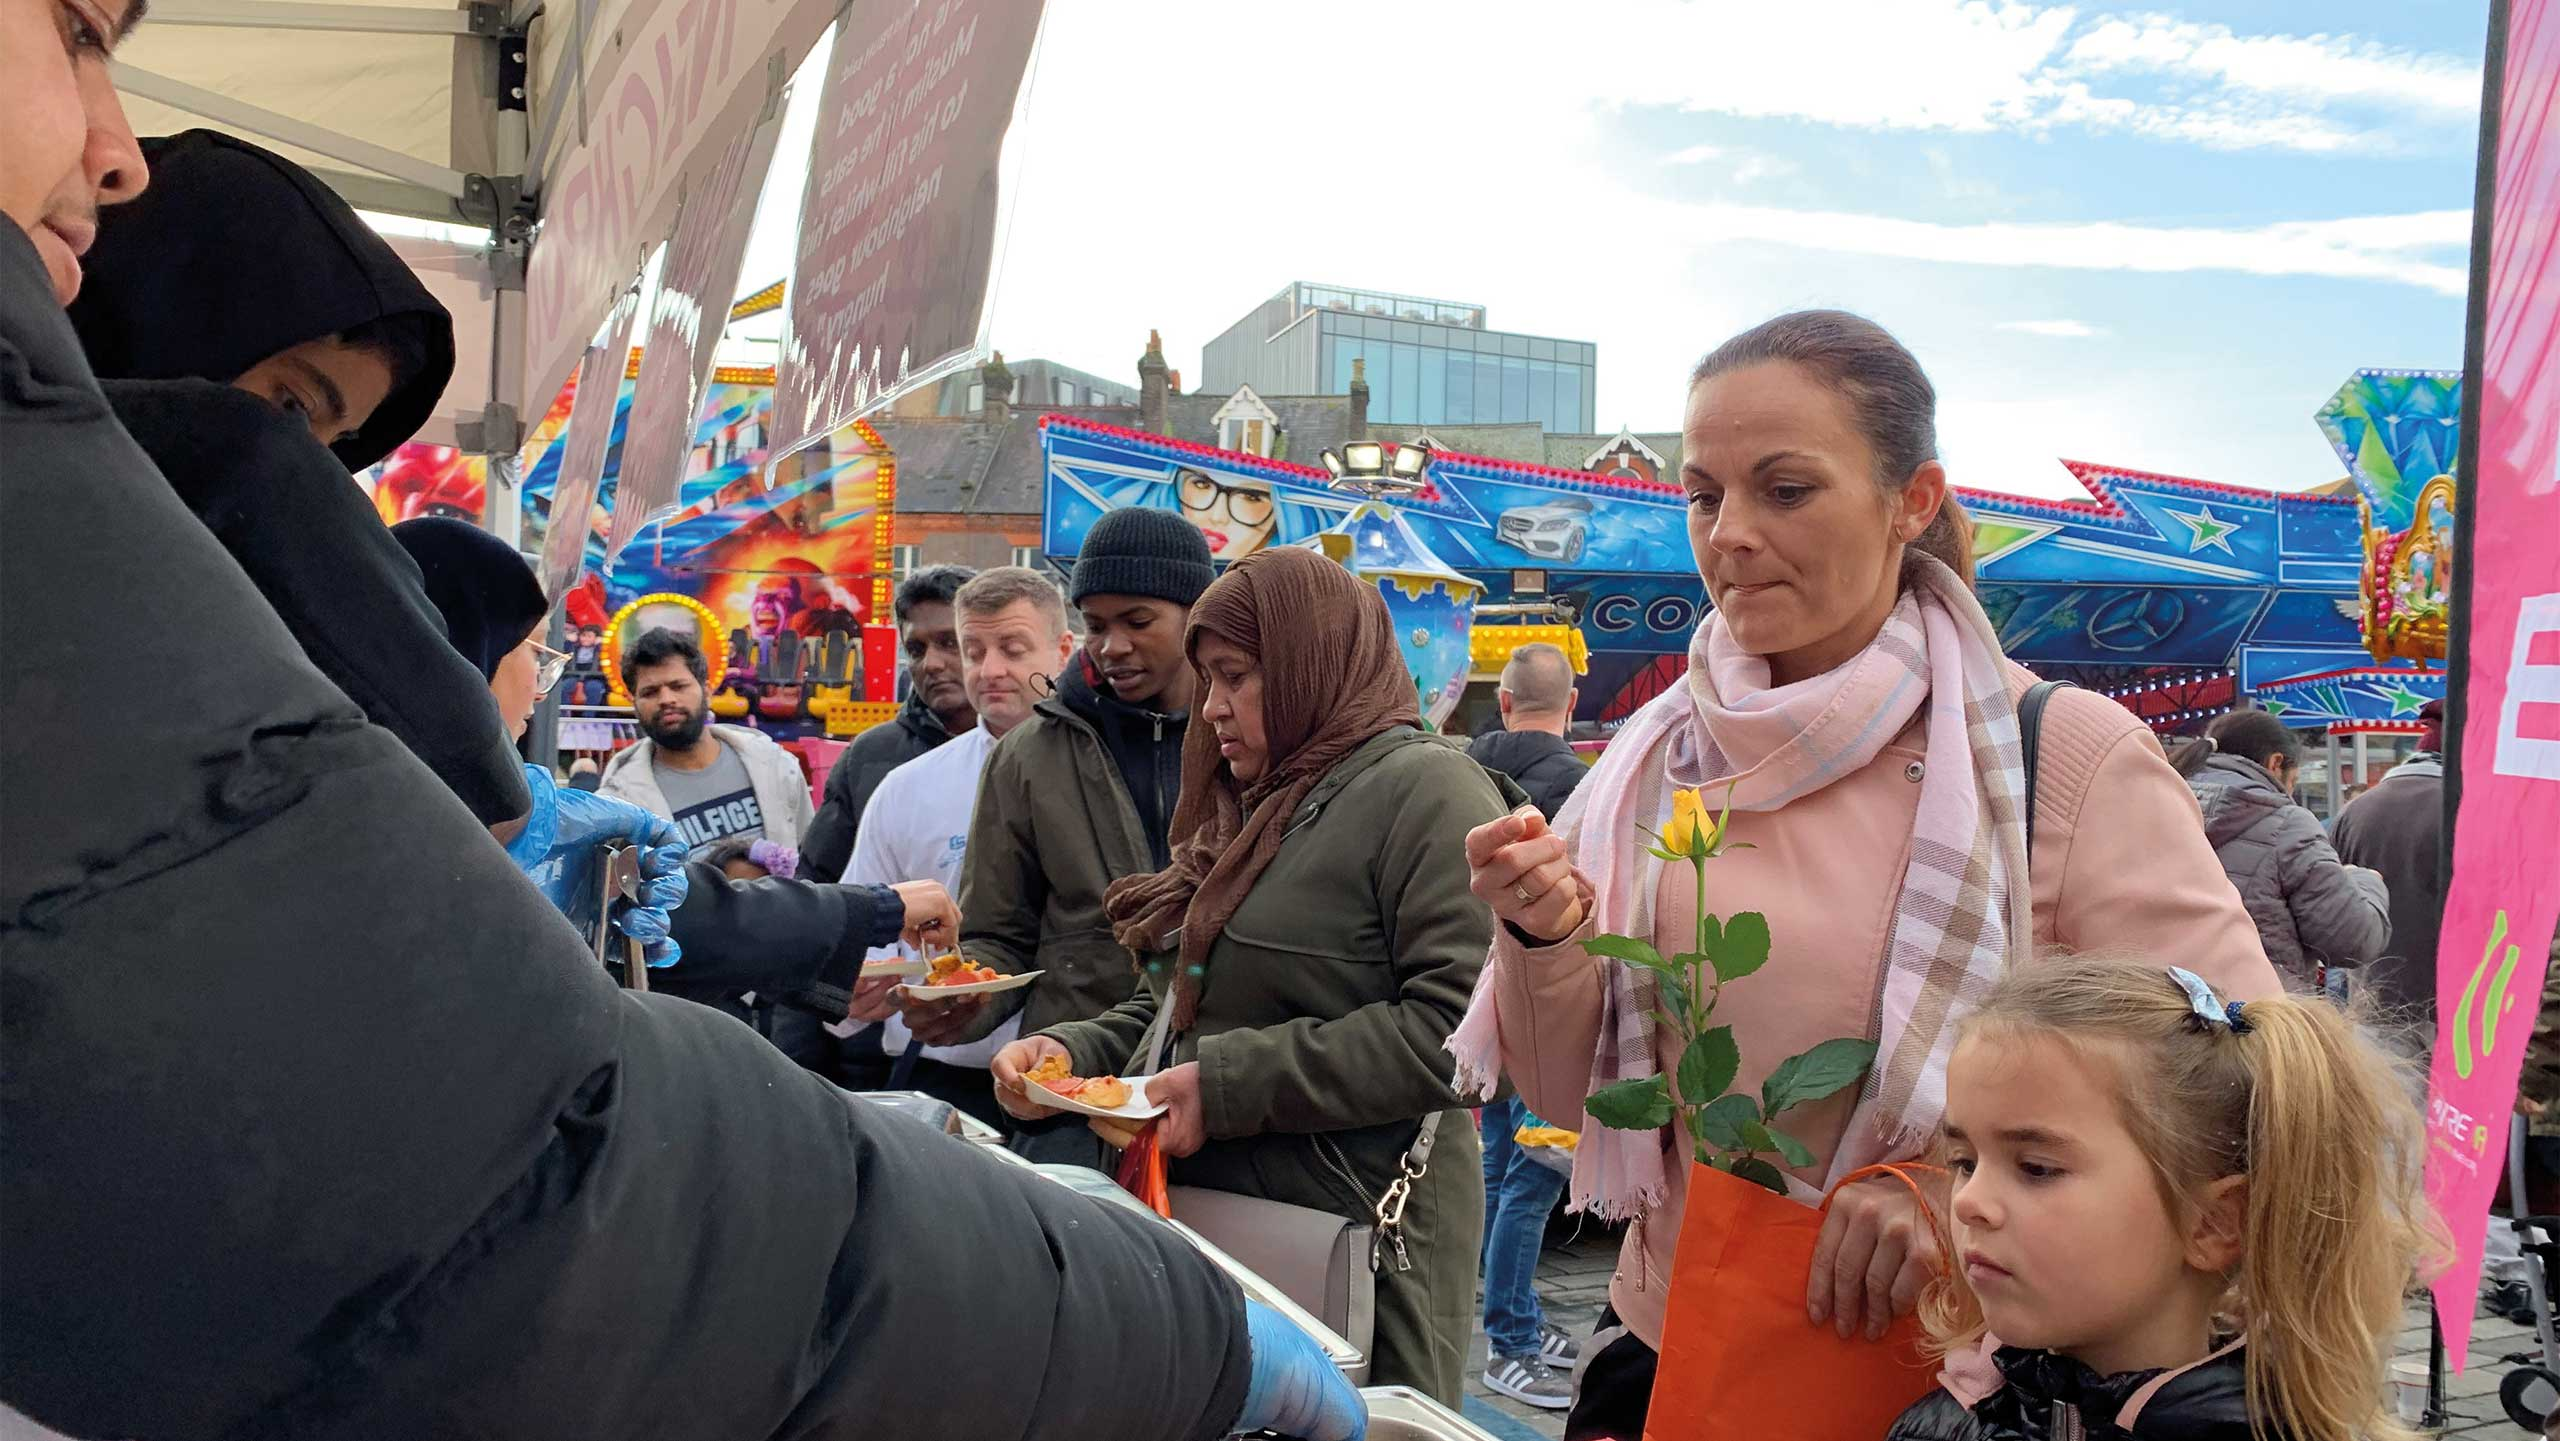 Image of line of people being served free food infront of rides at St. George's Square